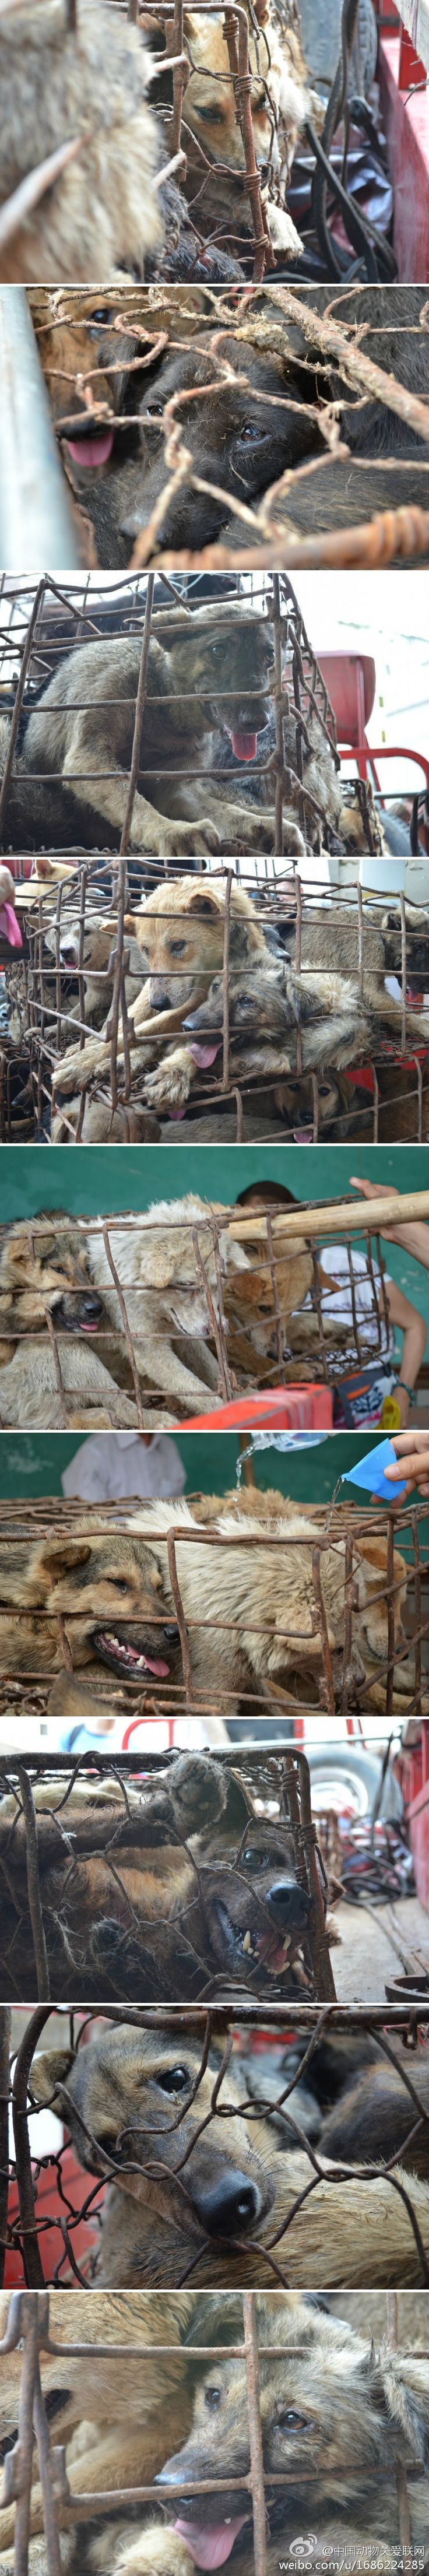 These are the poor dogs in Yulin,Guangxi province, China. They are waiyingto be killed n eat in the dog meat market.  June 21st is Yulin's Dog Meat Festival. people go to market, choose  the dog they like, kill n take home to cook.  It's fu~king unbelievable China garvernment do nothing about it.  Since they sell dogs by weight, so people will ROB whatever dog looks big n sell to the market, if you pet is husky, golden retriver, lamburado, dont walk on the street! they will drive a van n rob…